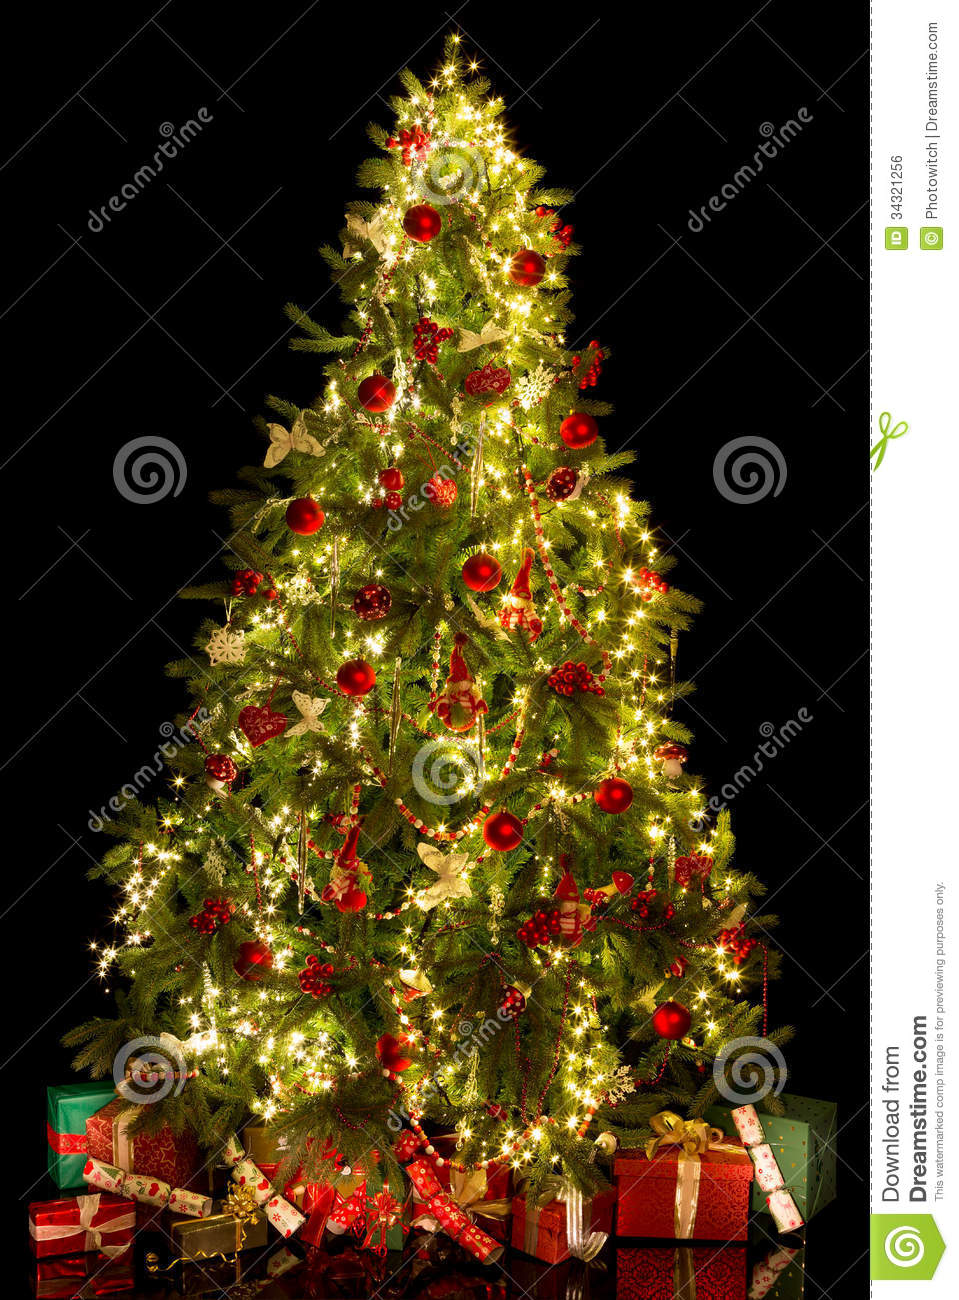 Illuminated Christmas Pictures